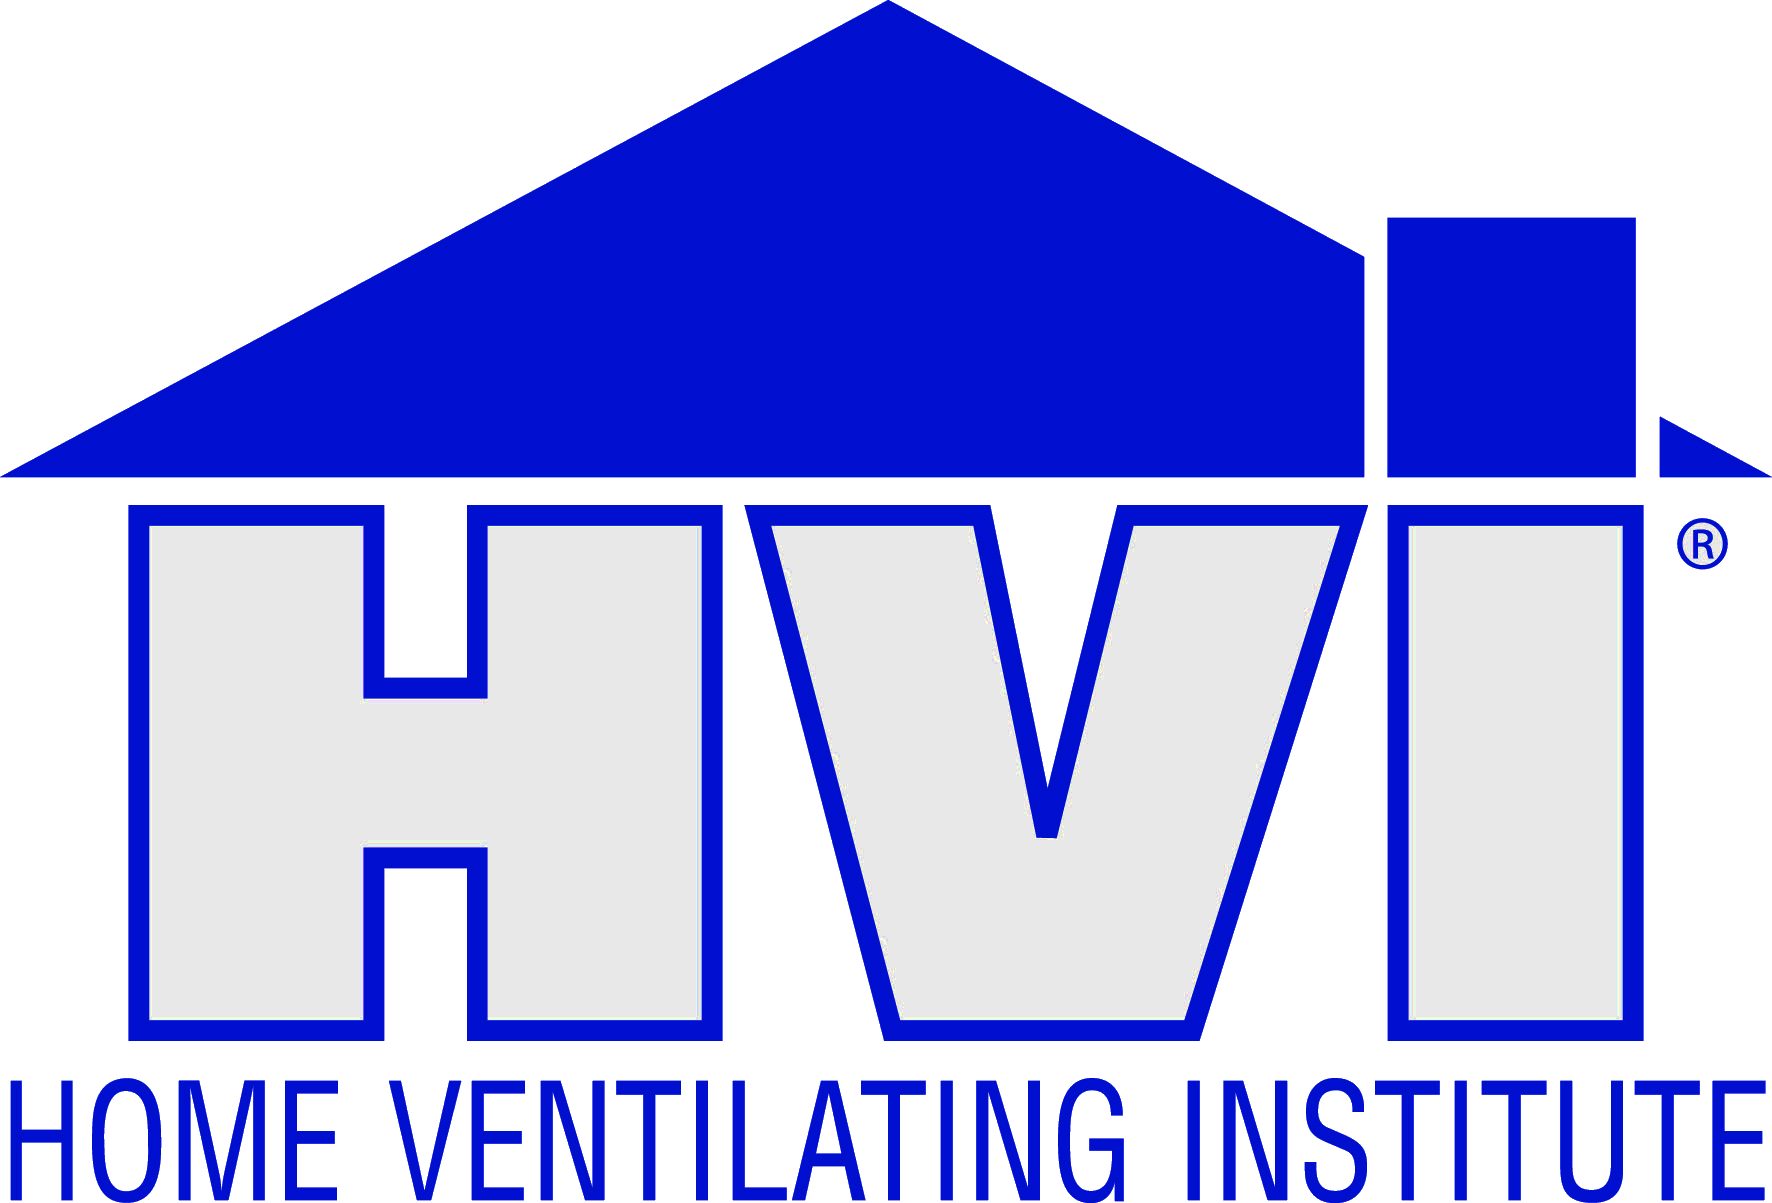 Home Ventilating Institute, Inc. (HVI)